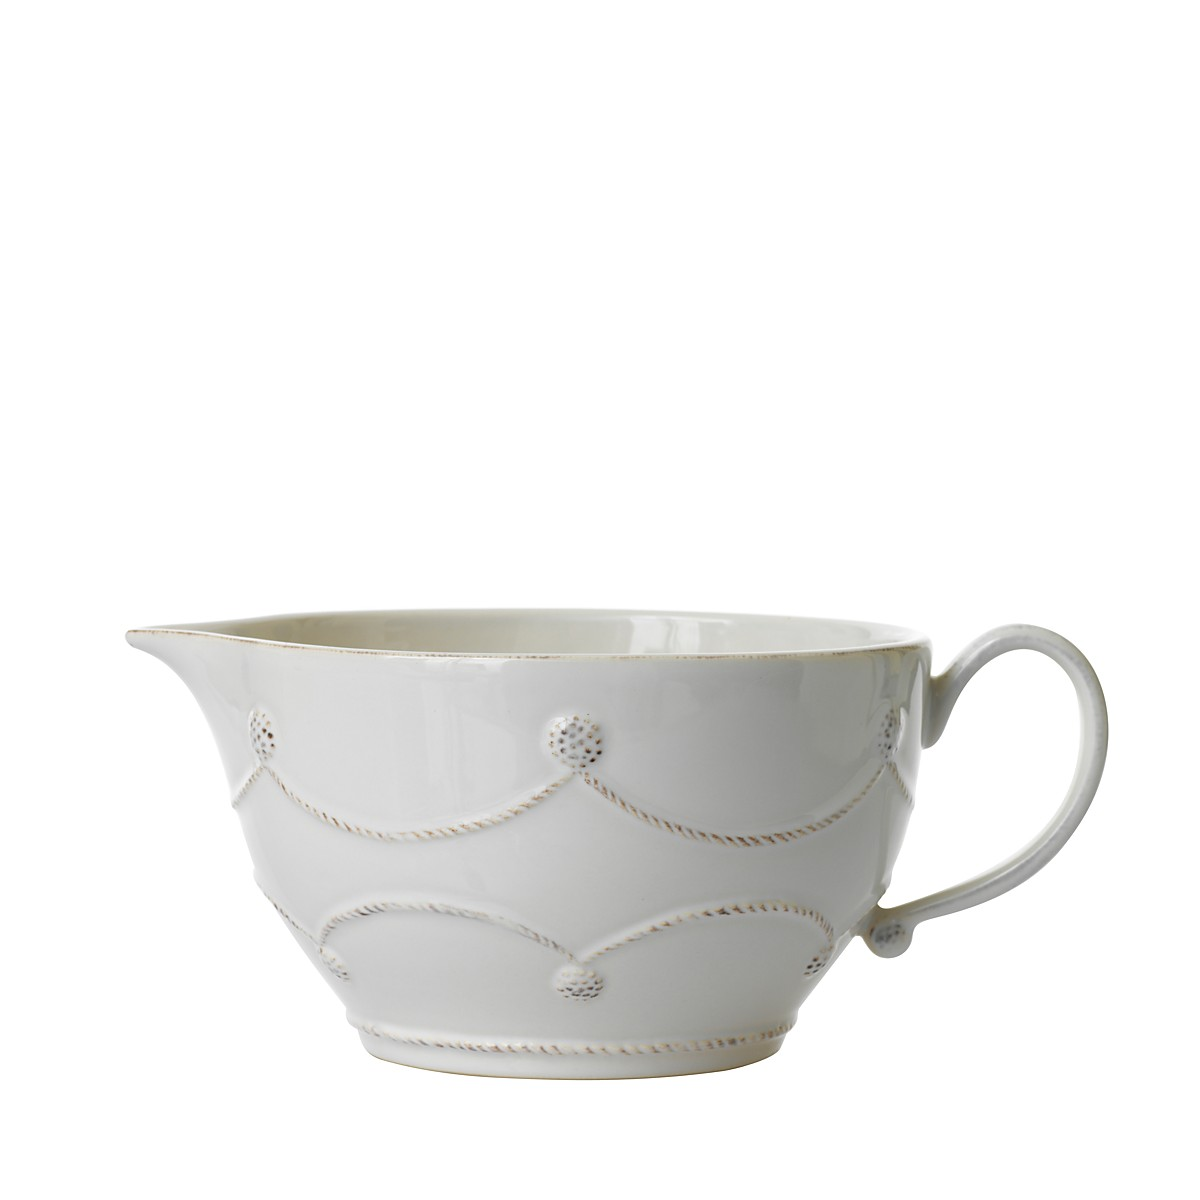 Juliska Berry Amp Thread Batter Bowl Tulips